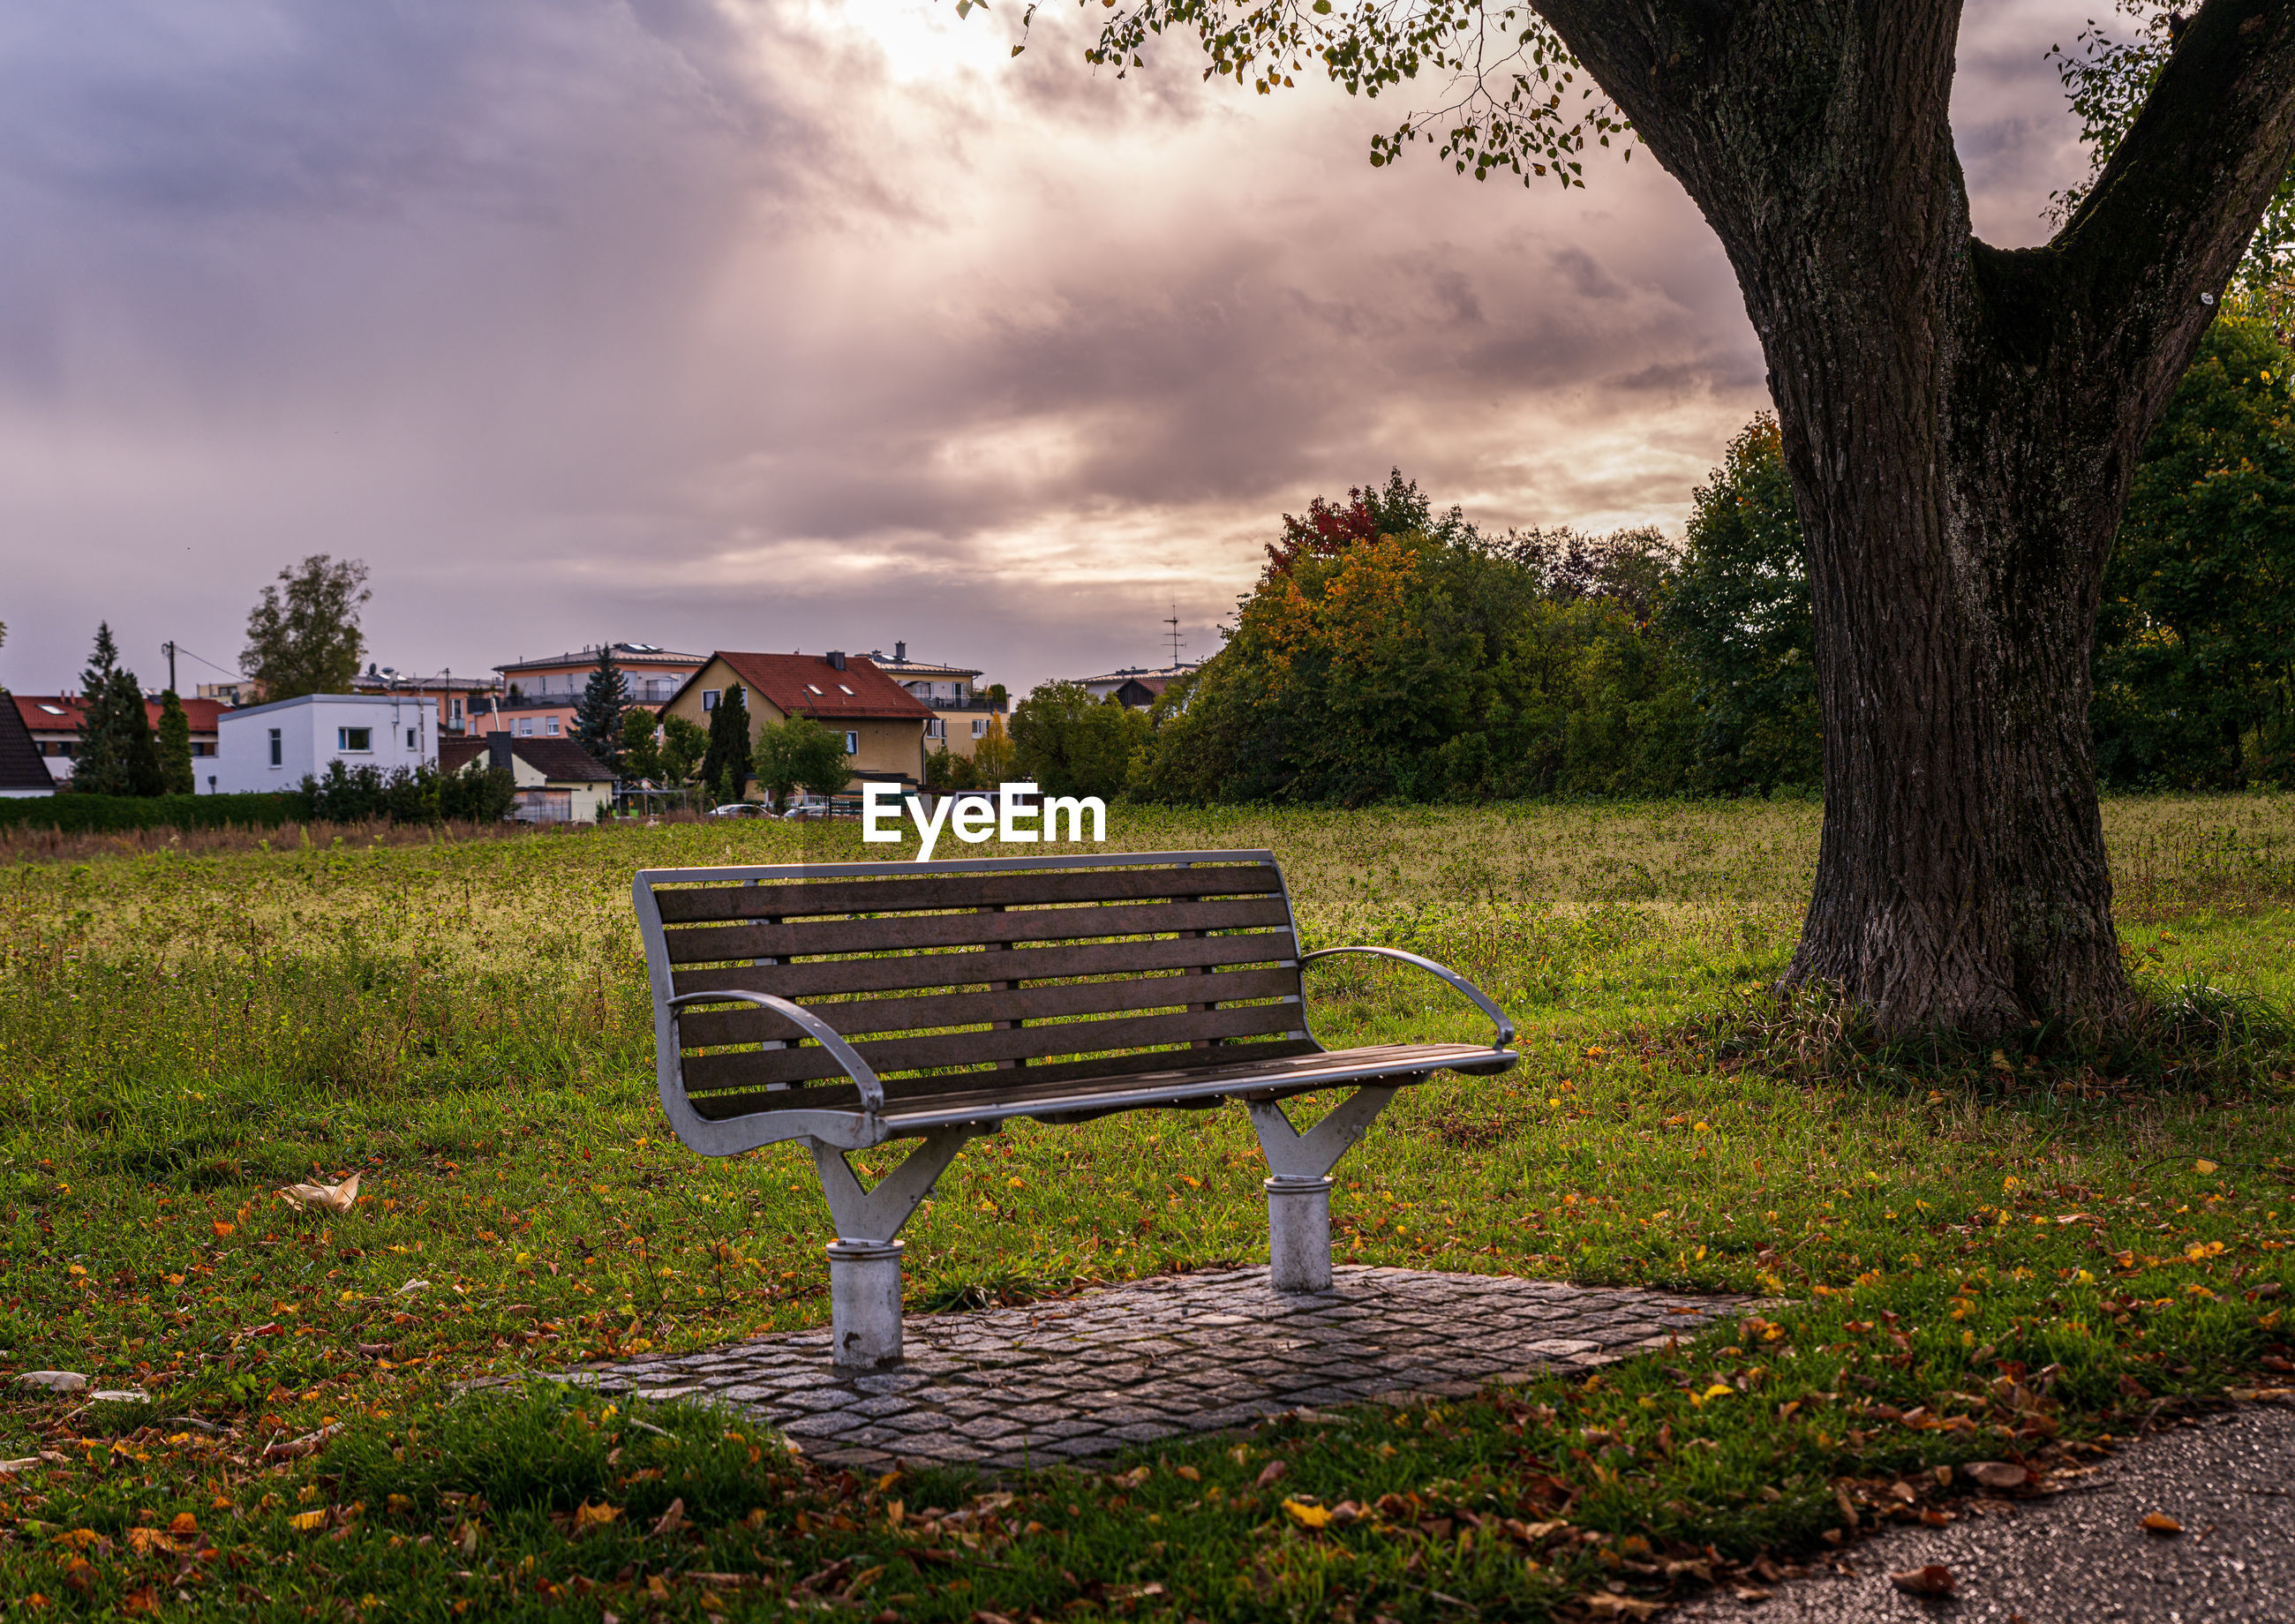 Empty bench on field by trees against sky